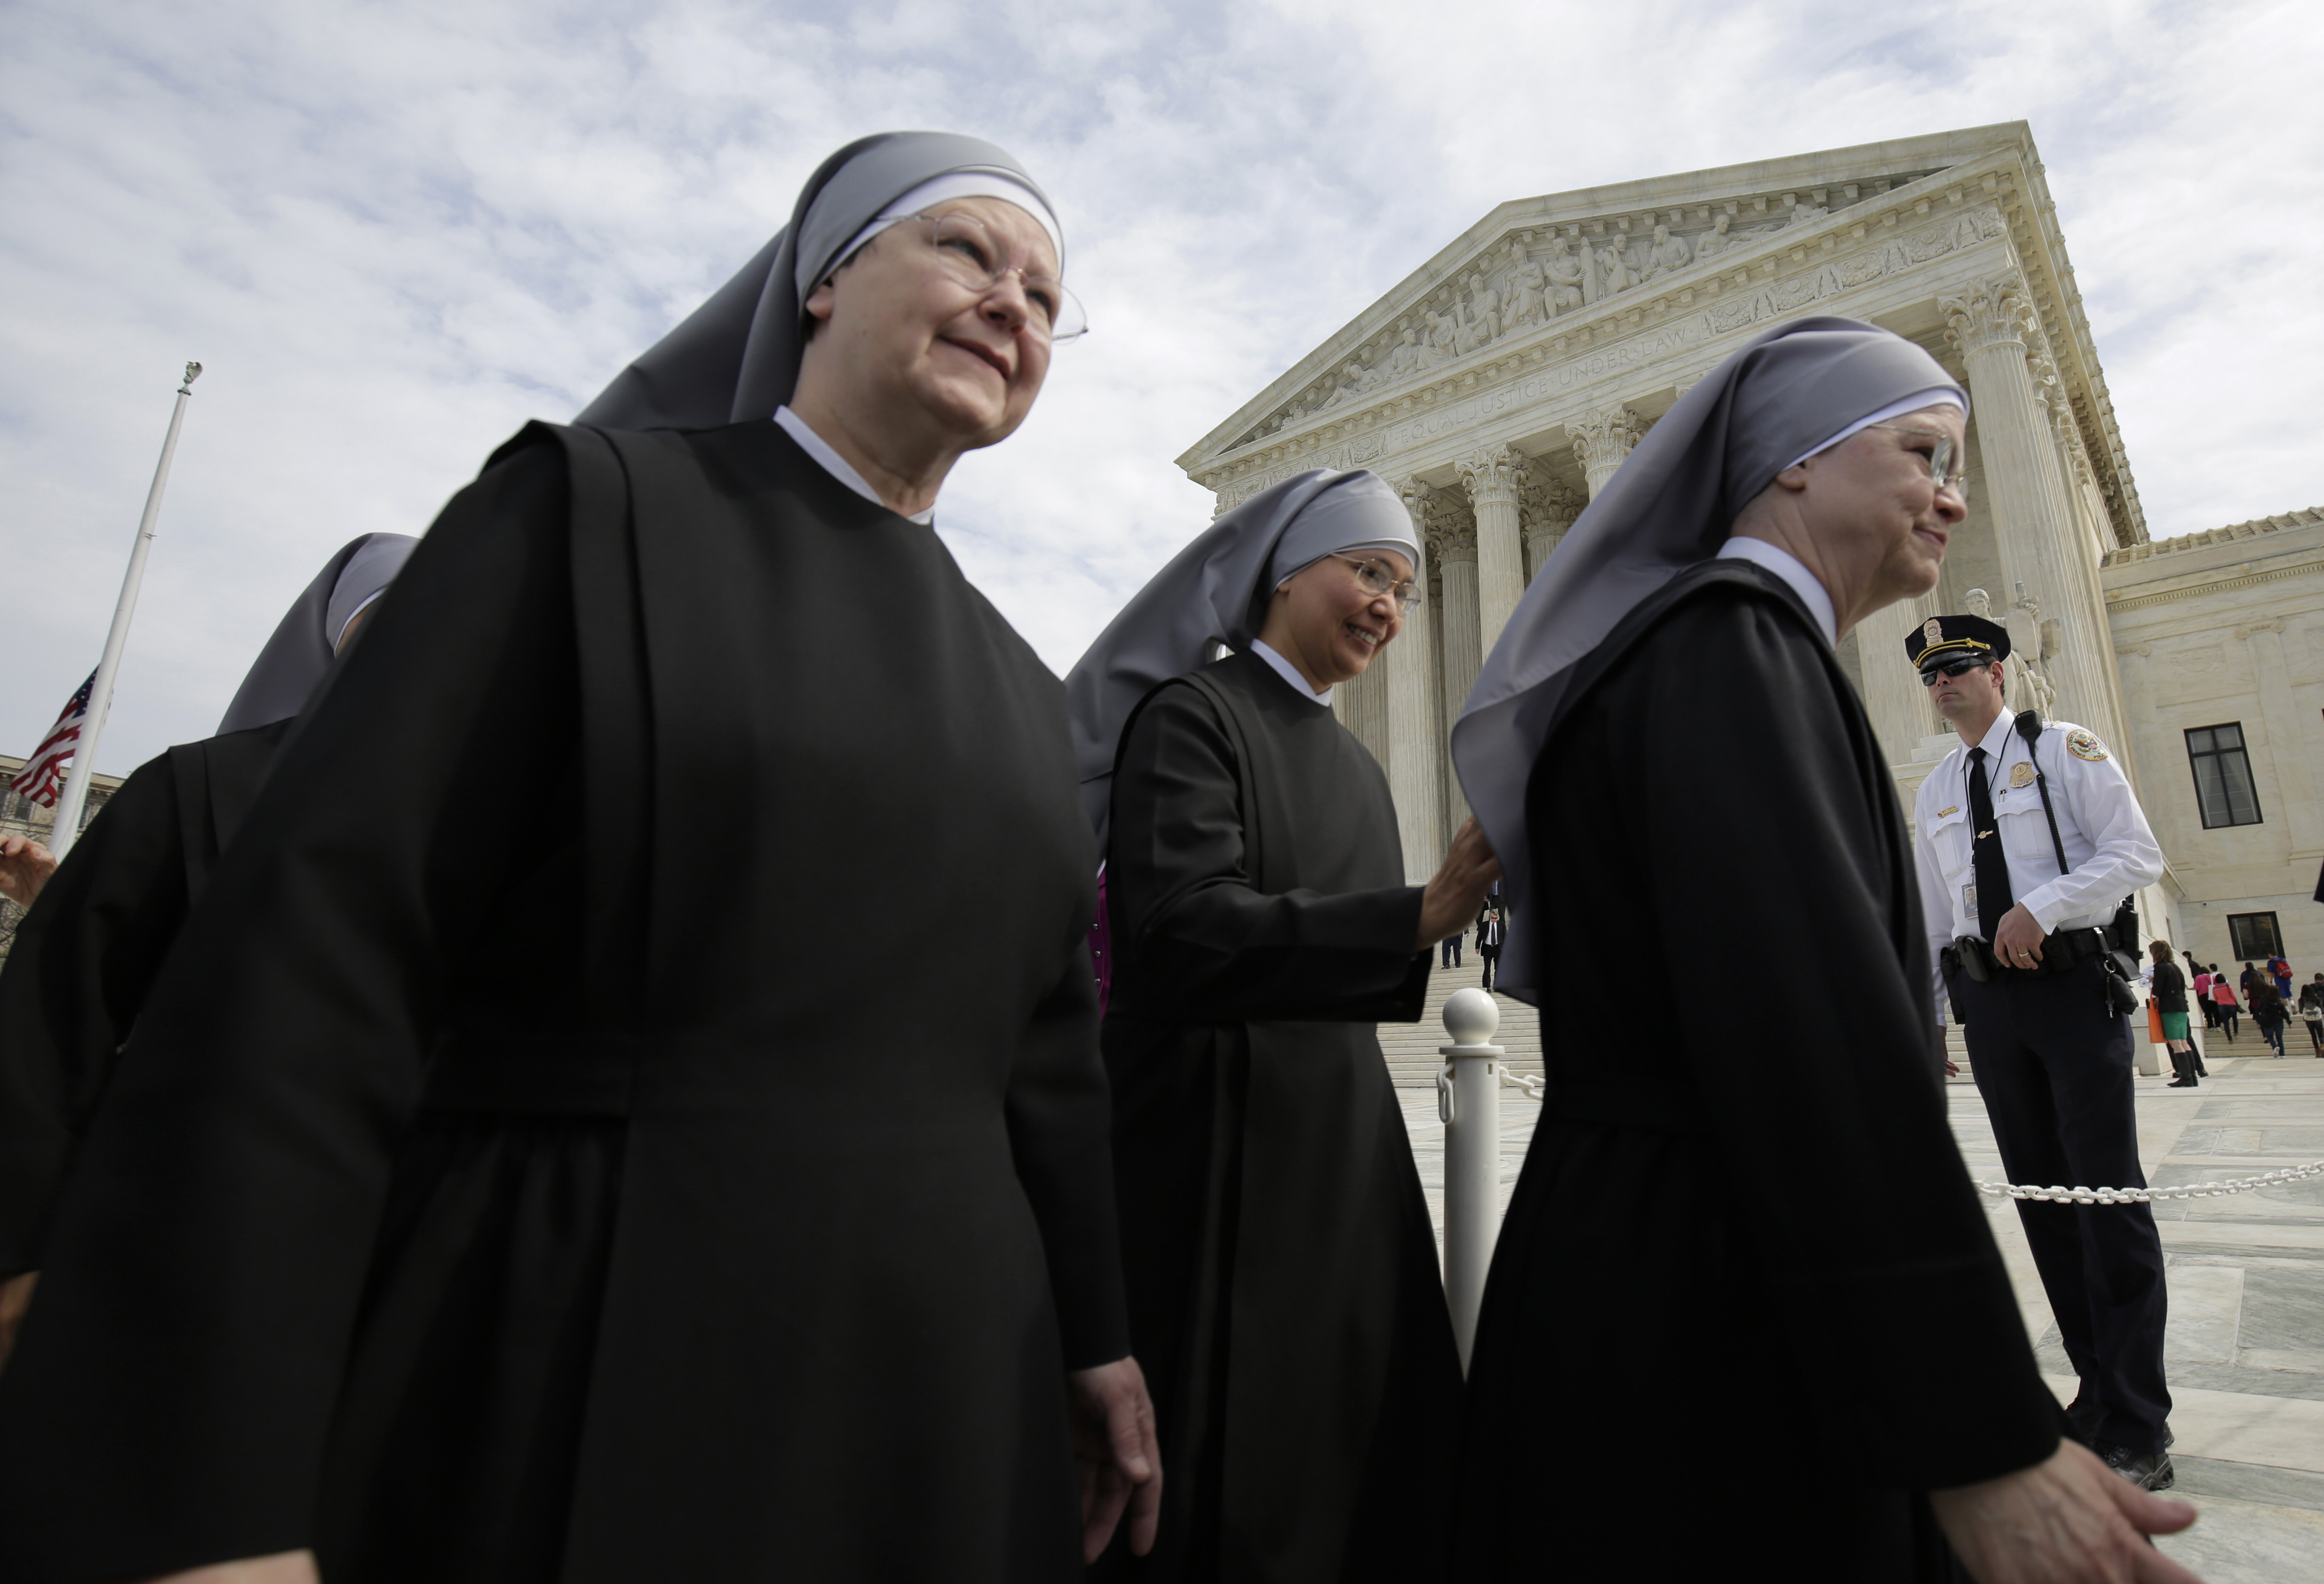 The Little Sisters of the Poor outside the Supreme Court on March 23, 2016. (Reuters/Joshua Roberts)